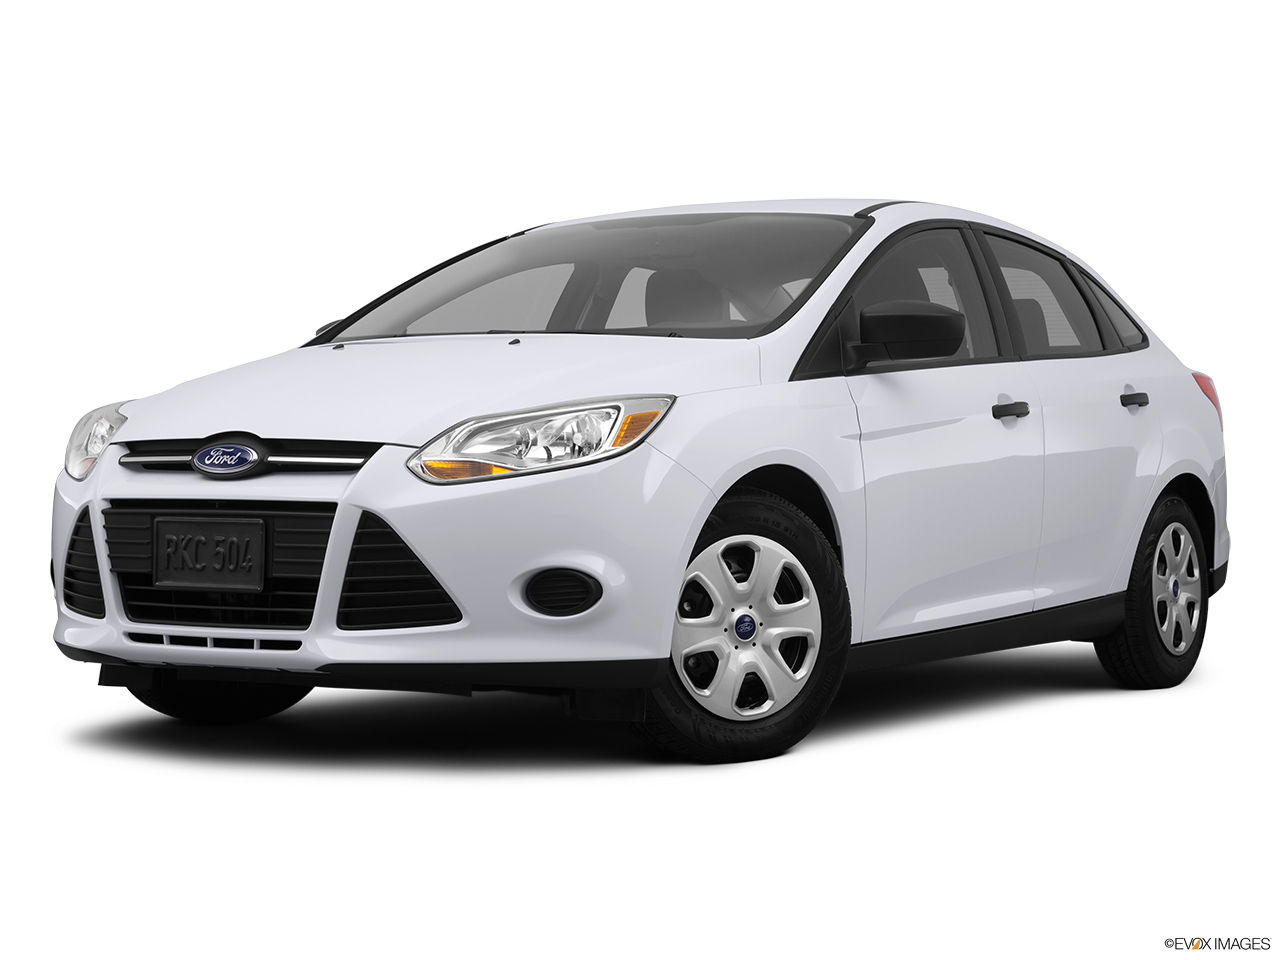 Buy A Ford Focus 2012 Ford Focus Vs 2012 Mazda 3 Which One Should I Buy